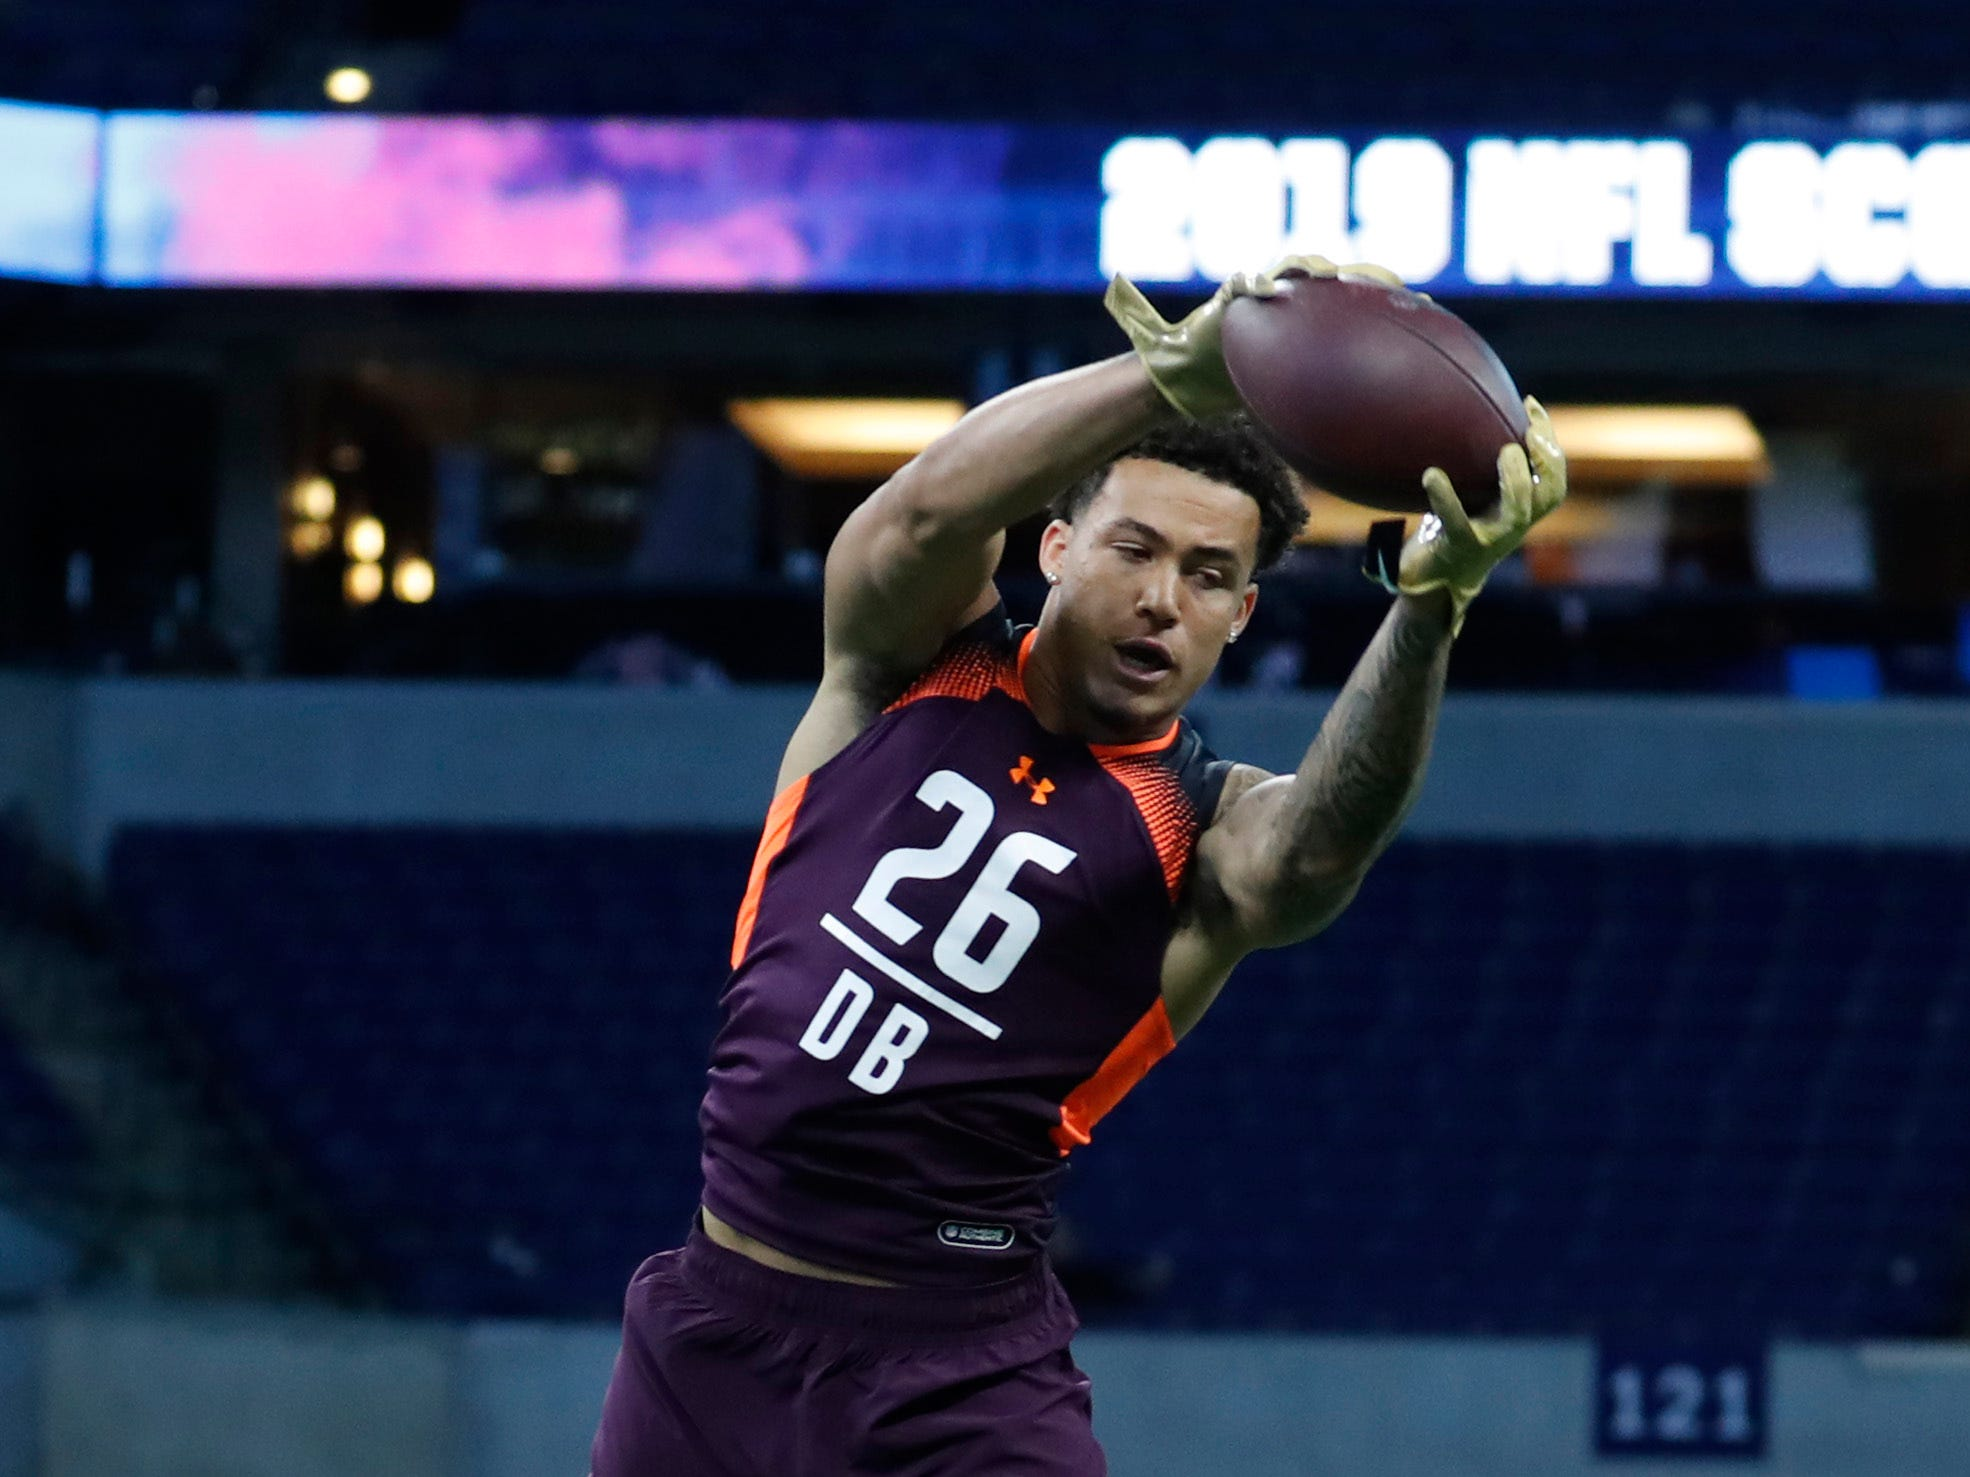 Mar 4, 2019; Indianapolis, IN, USA; Washington defensive back Byron Murphy (DB26) goes through workout drills during the 2019 NFL Combine at Lucas Oil Stadium. Mandatory Credit: Brian Spurlock-USA TODAY Sports